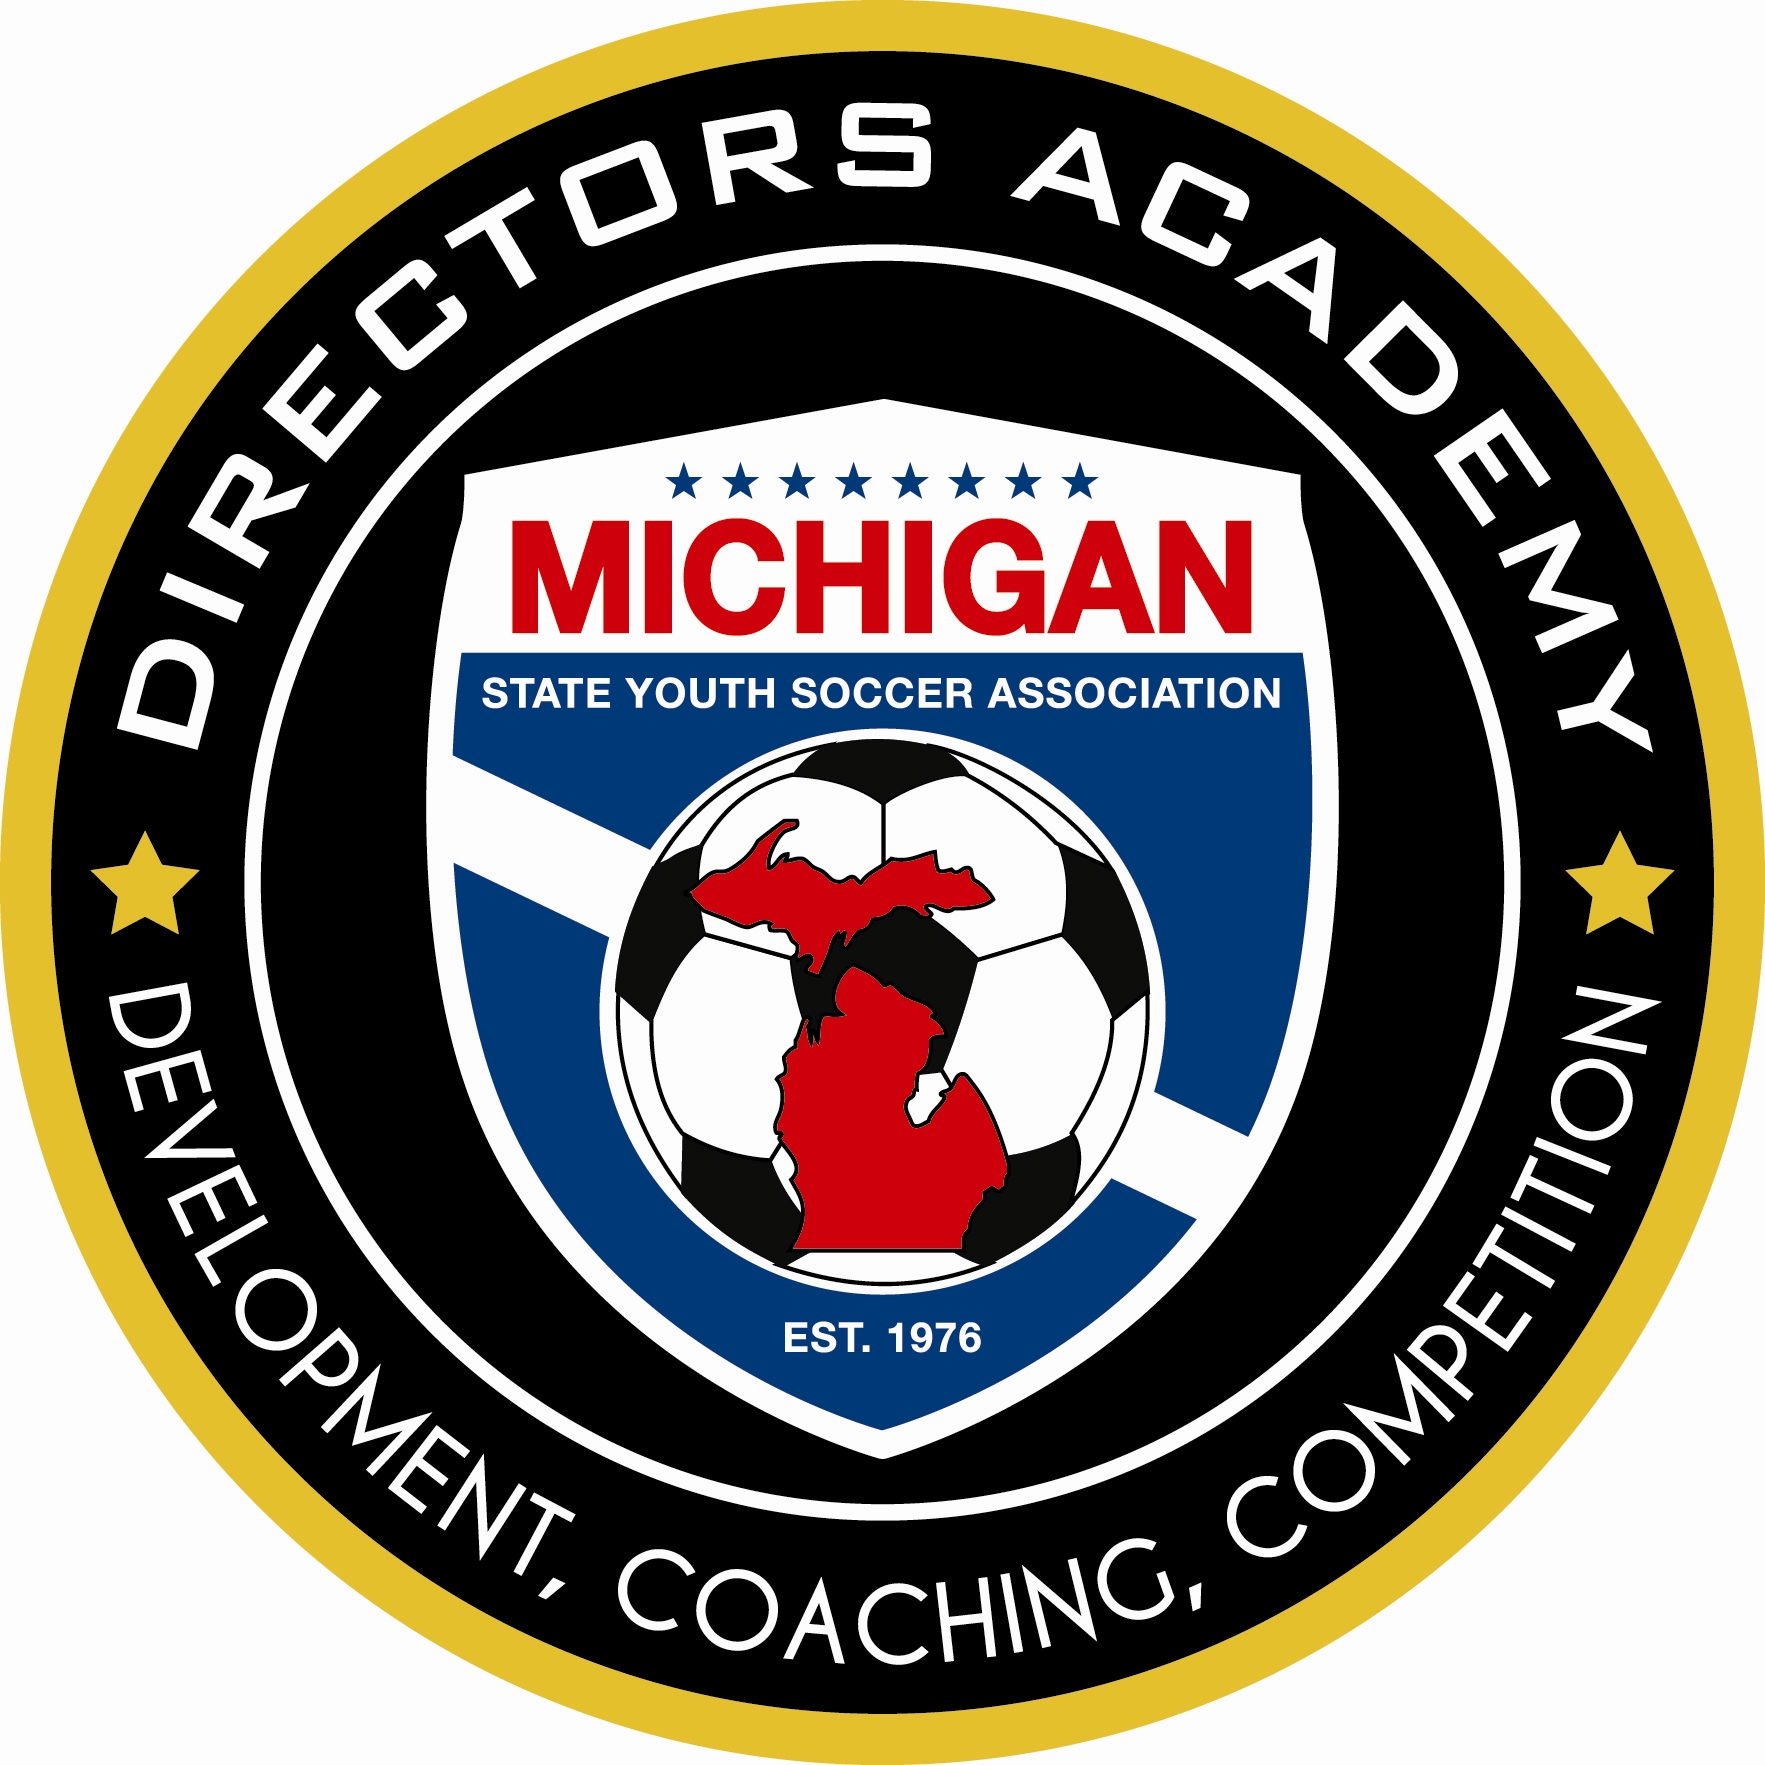 Midland Soccer Club selected to the Director's Academy!